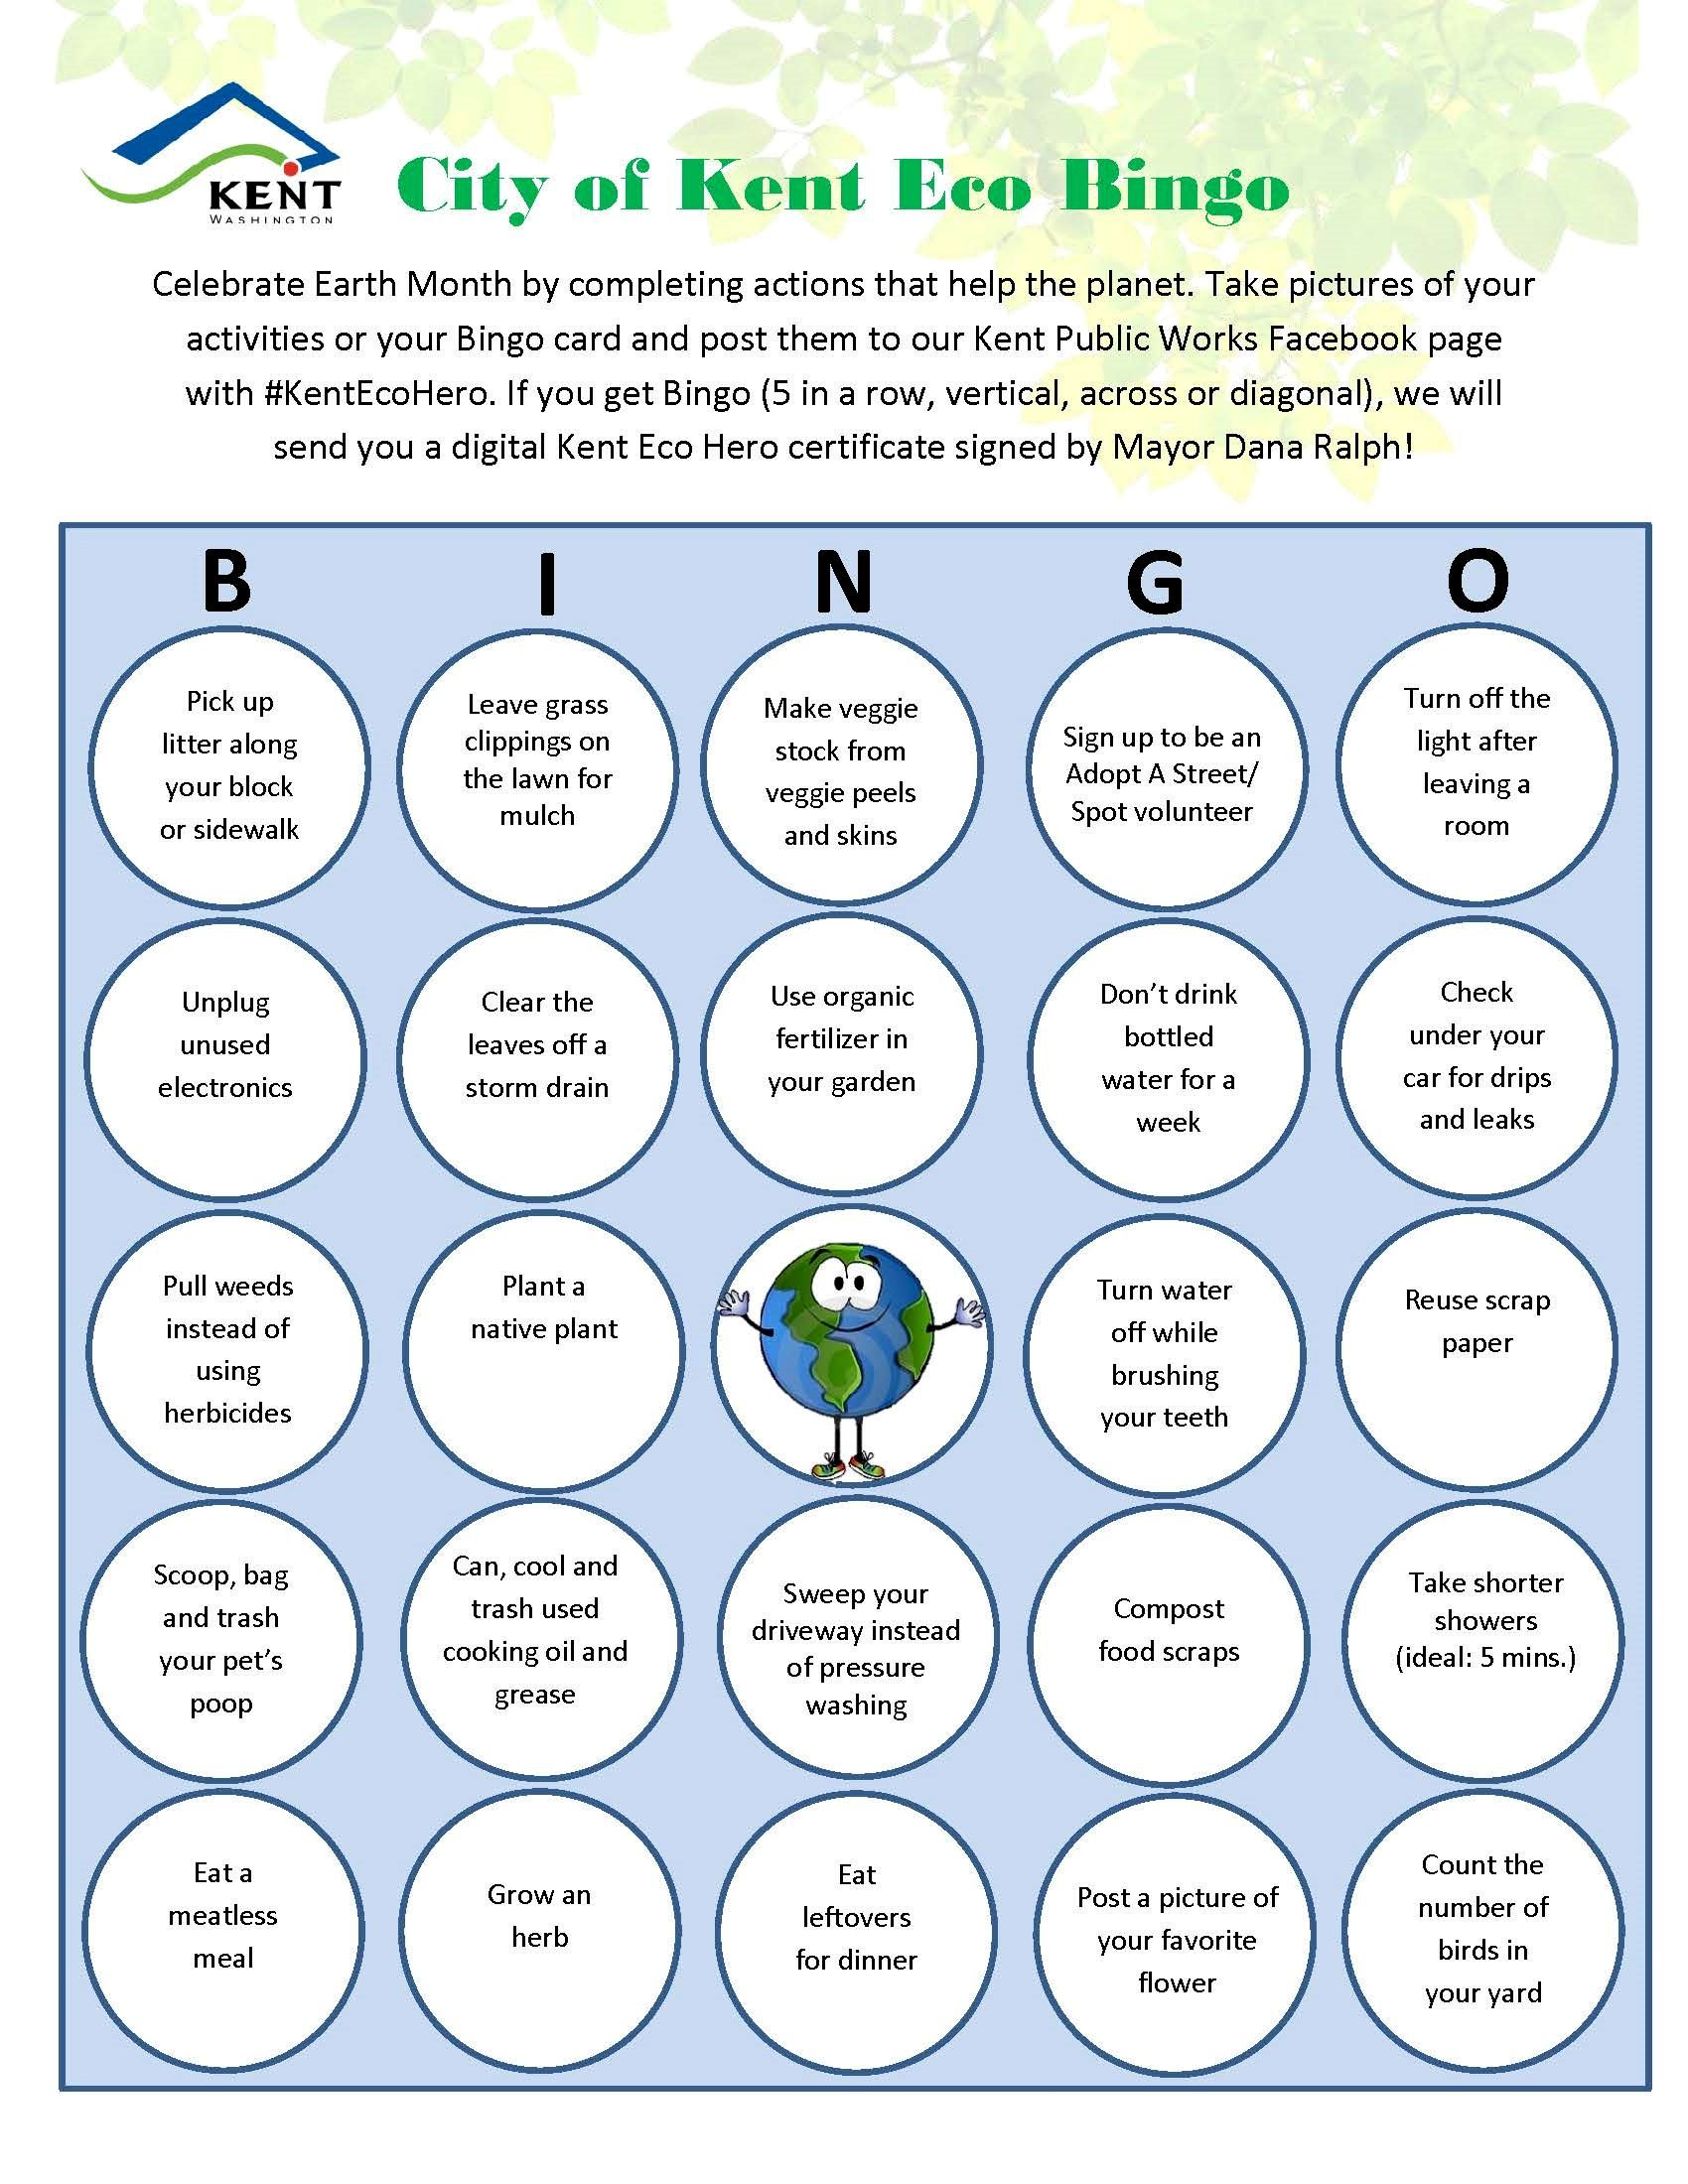 Eco Bingo - Kent Public Works - 6-12-20 Blog